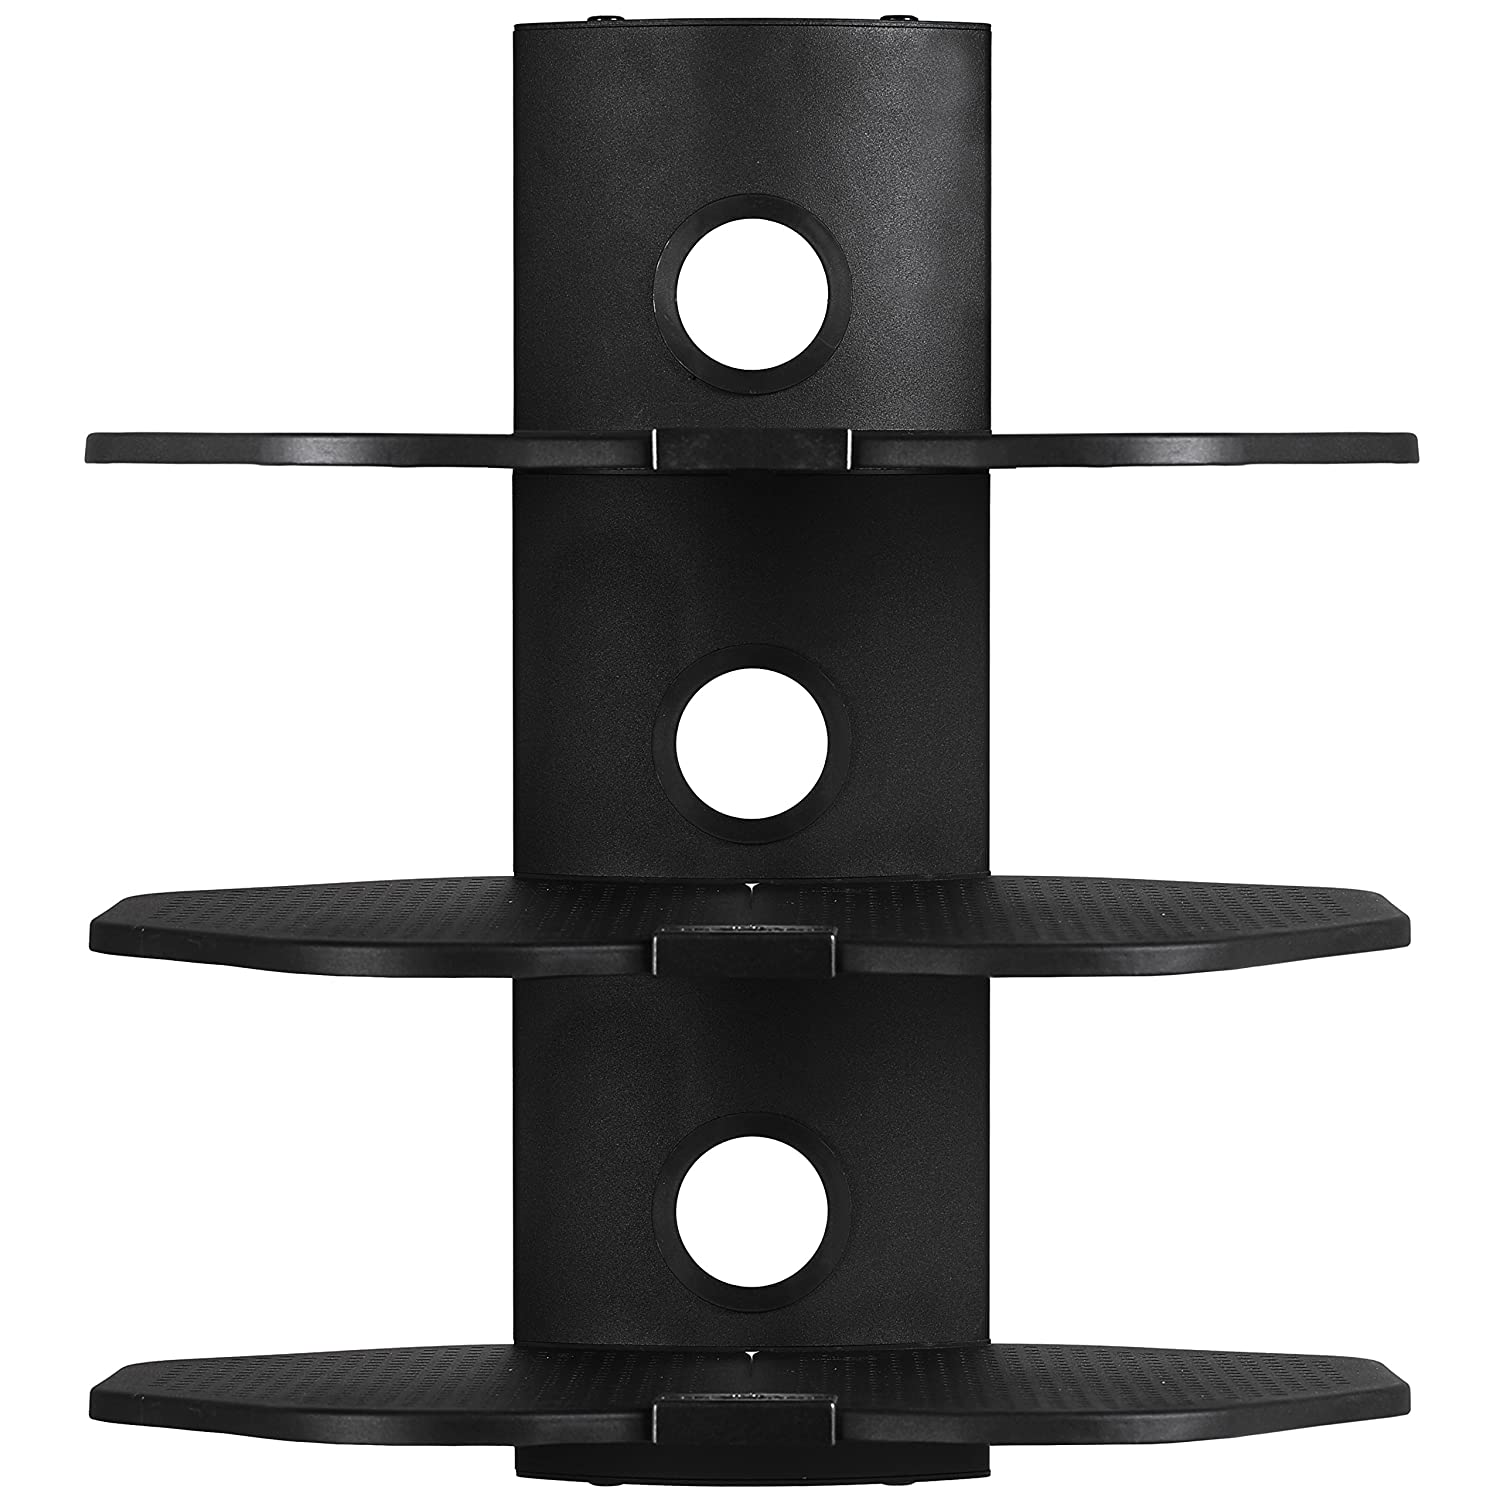 Amazon cheetah as3b 3 shelf tv component wall mount shelving amazon cheetah as3b 3 shelf tv component wall mount shelving bracket with 18x16 inch shelf 15 feet twisted veins hdmi cable for satellite box amipublicfo Images